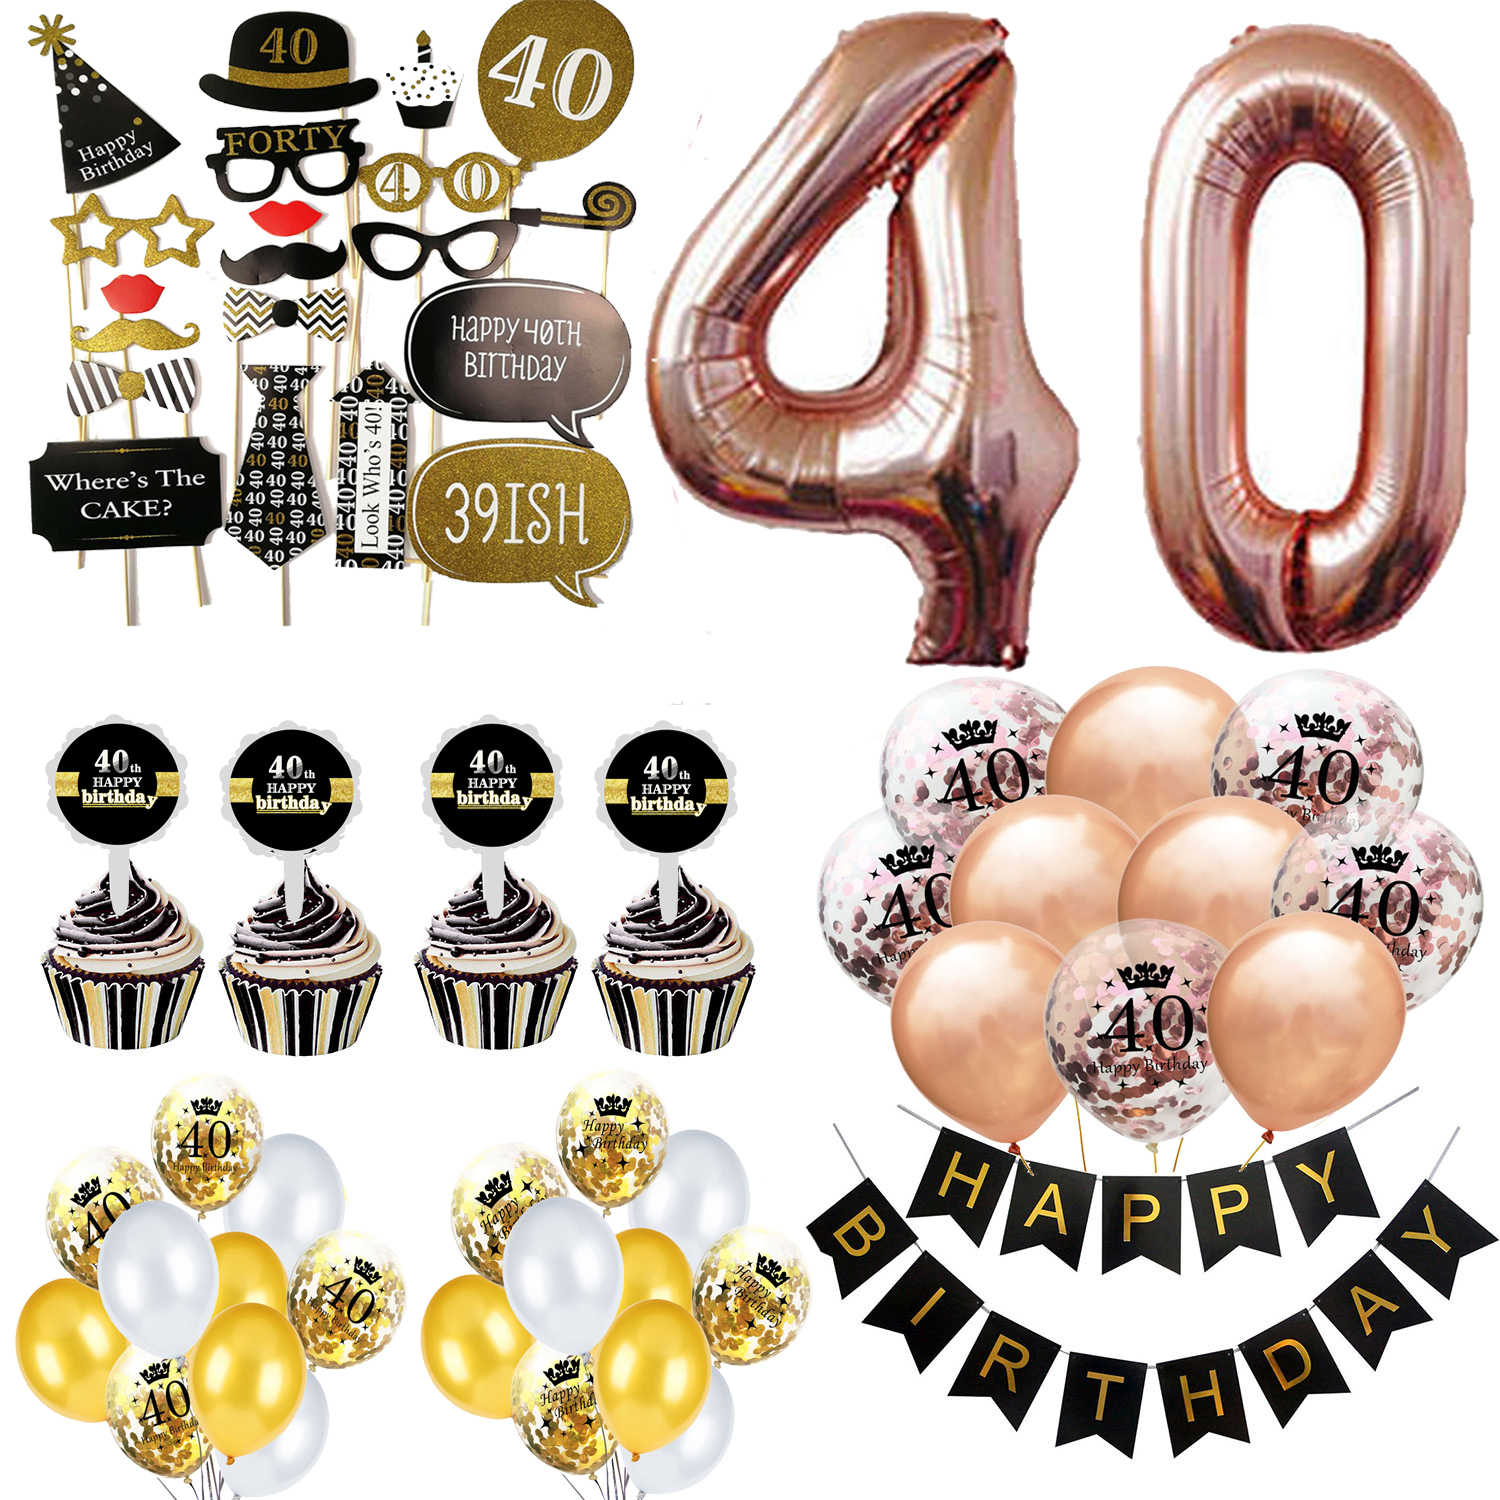 Amawill Adults 40th Happy Birthday Party Decorations Latex Foil Balloons Banner Cake Topper Stickers 30